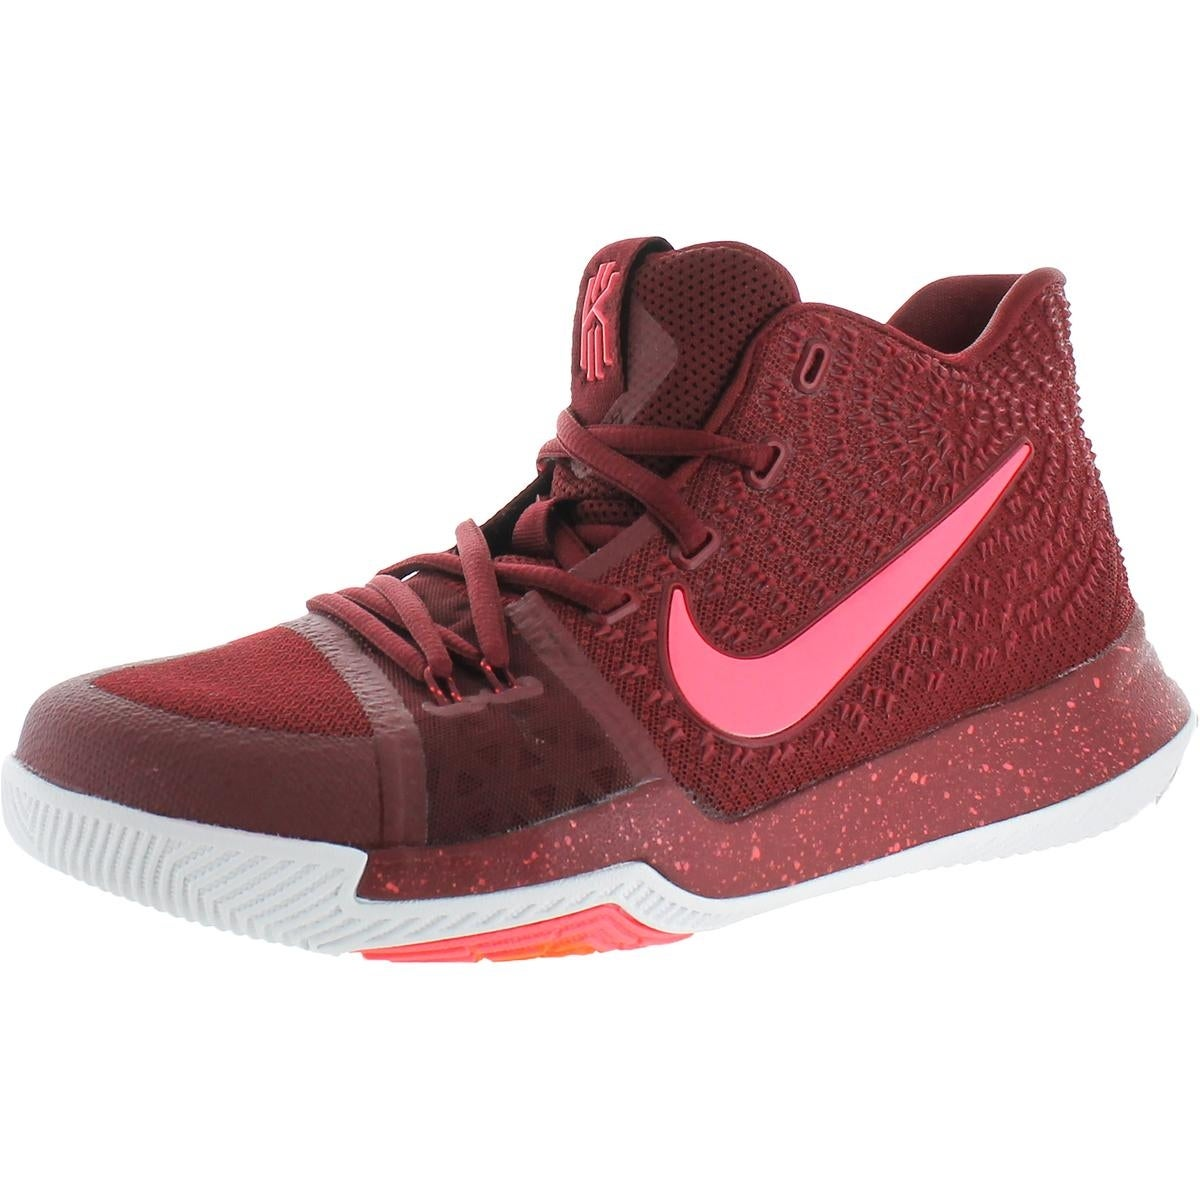 on sale e19d8 d1793 Shop Nike Boys Kyrie 3 Basketball Shoes Colorblock Mids - Free Shipping  Today - Overstock - 22025161